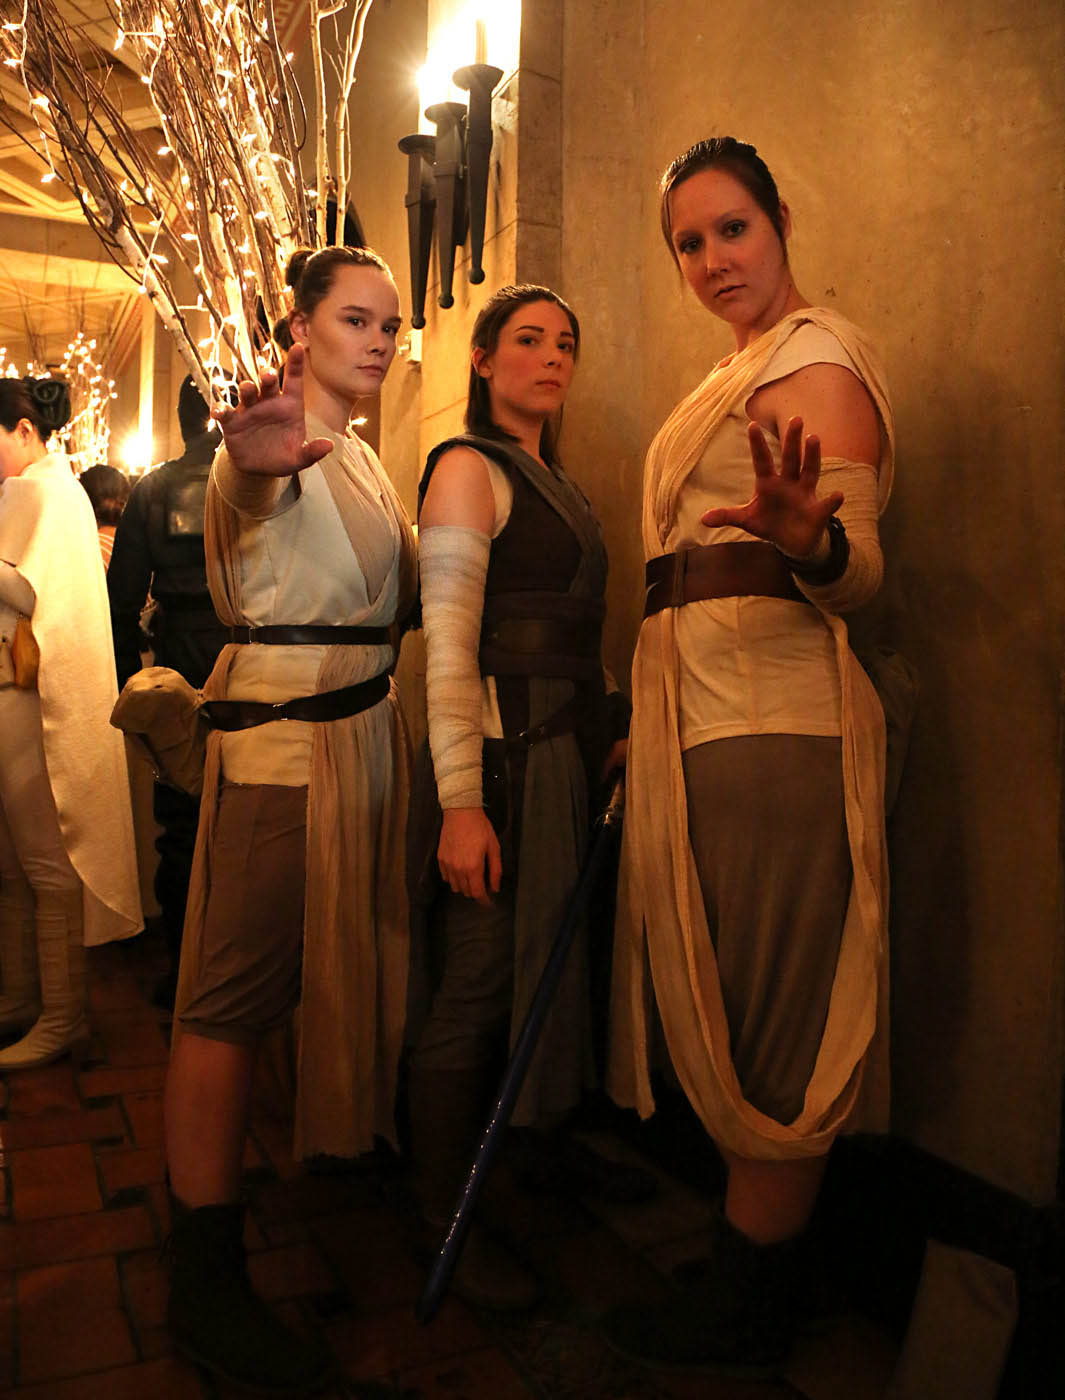 Three cosplayers dressed as Rey for the premiere of The Rise of Skywalker.